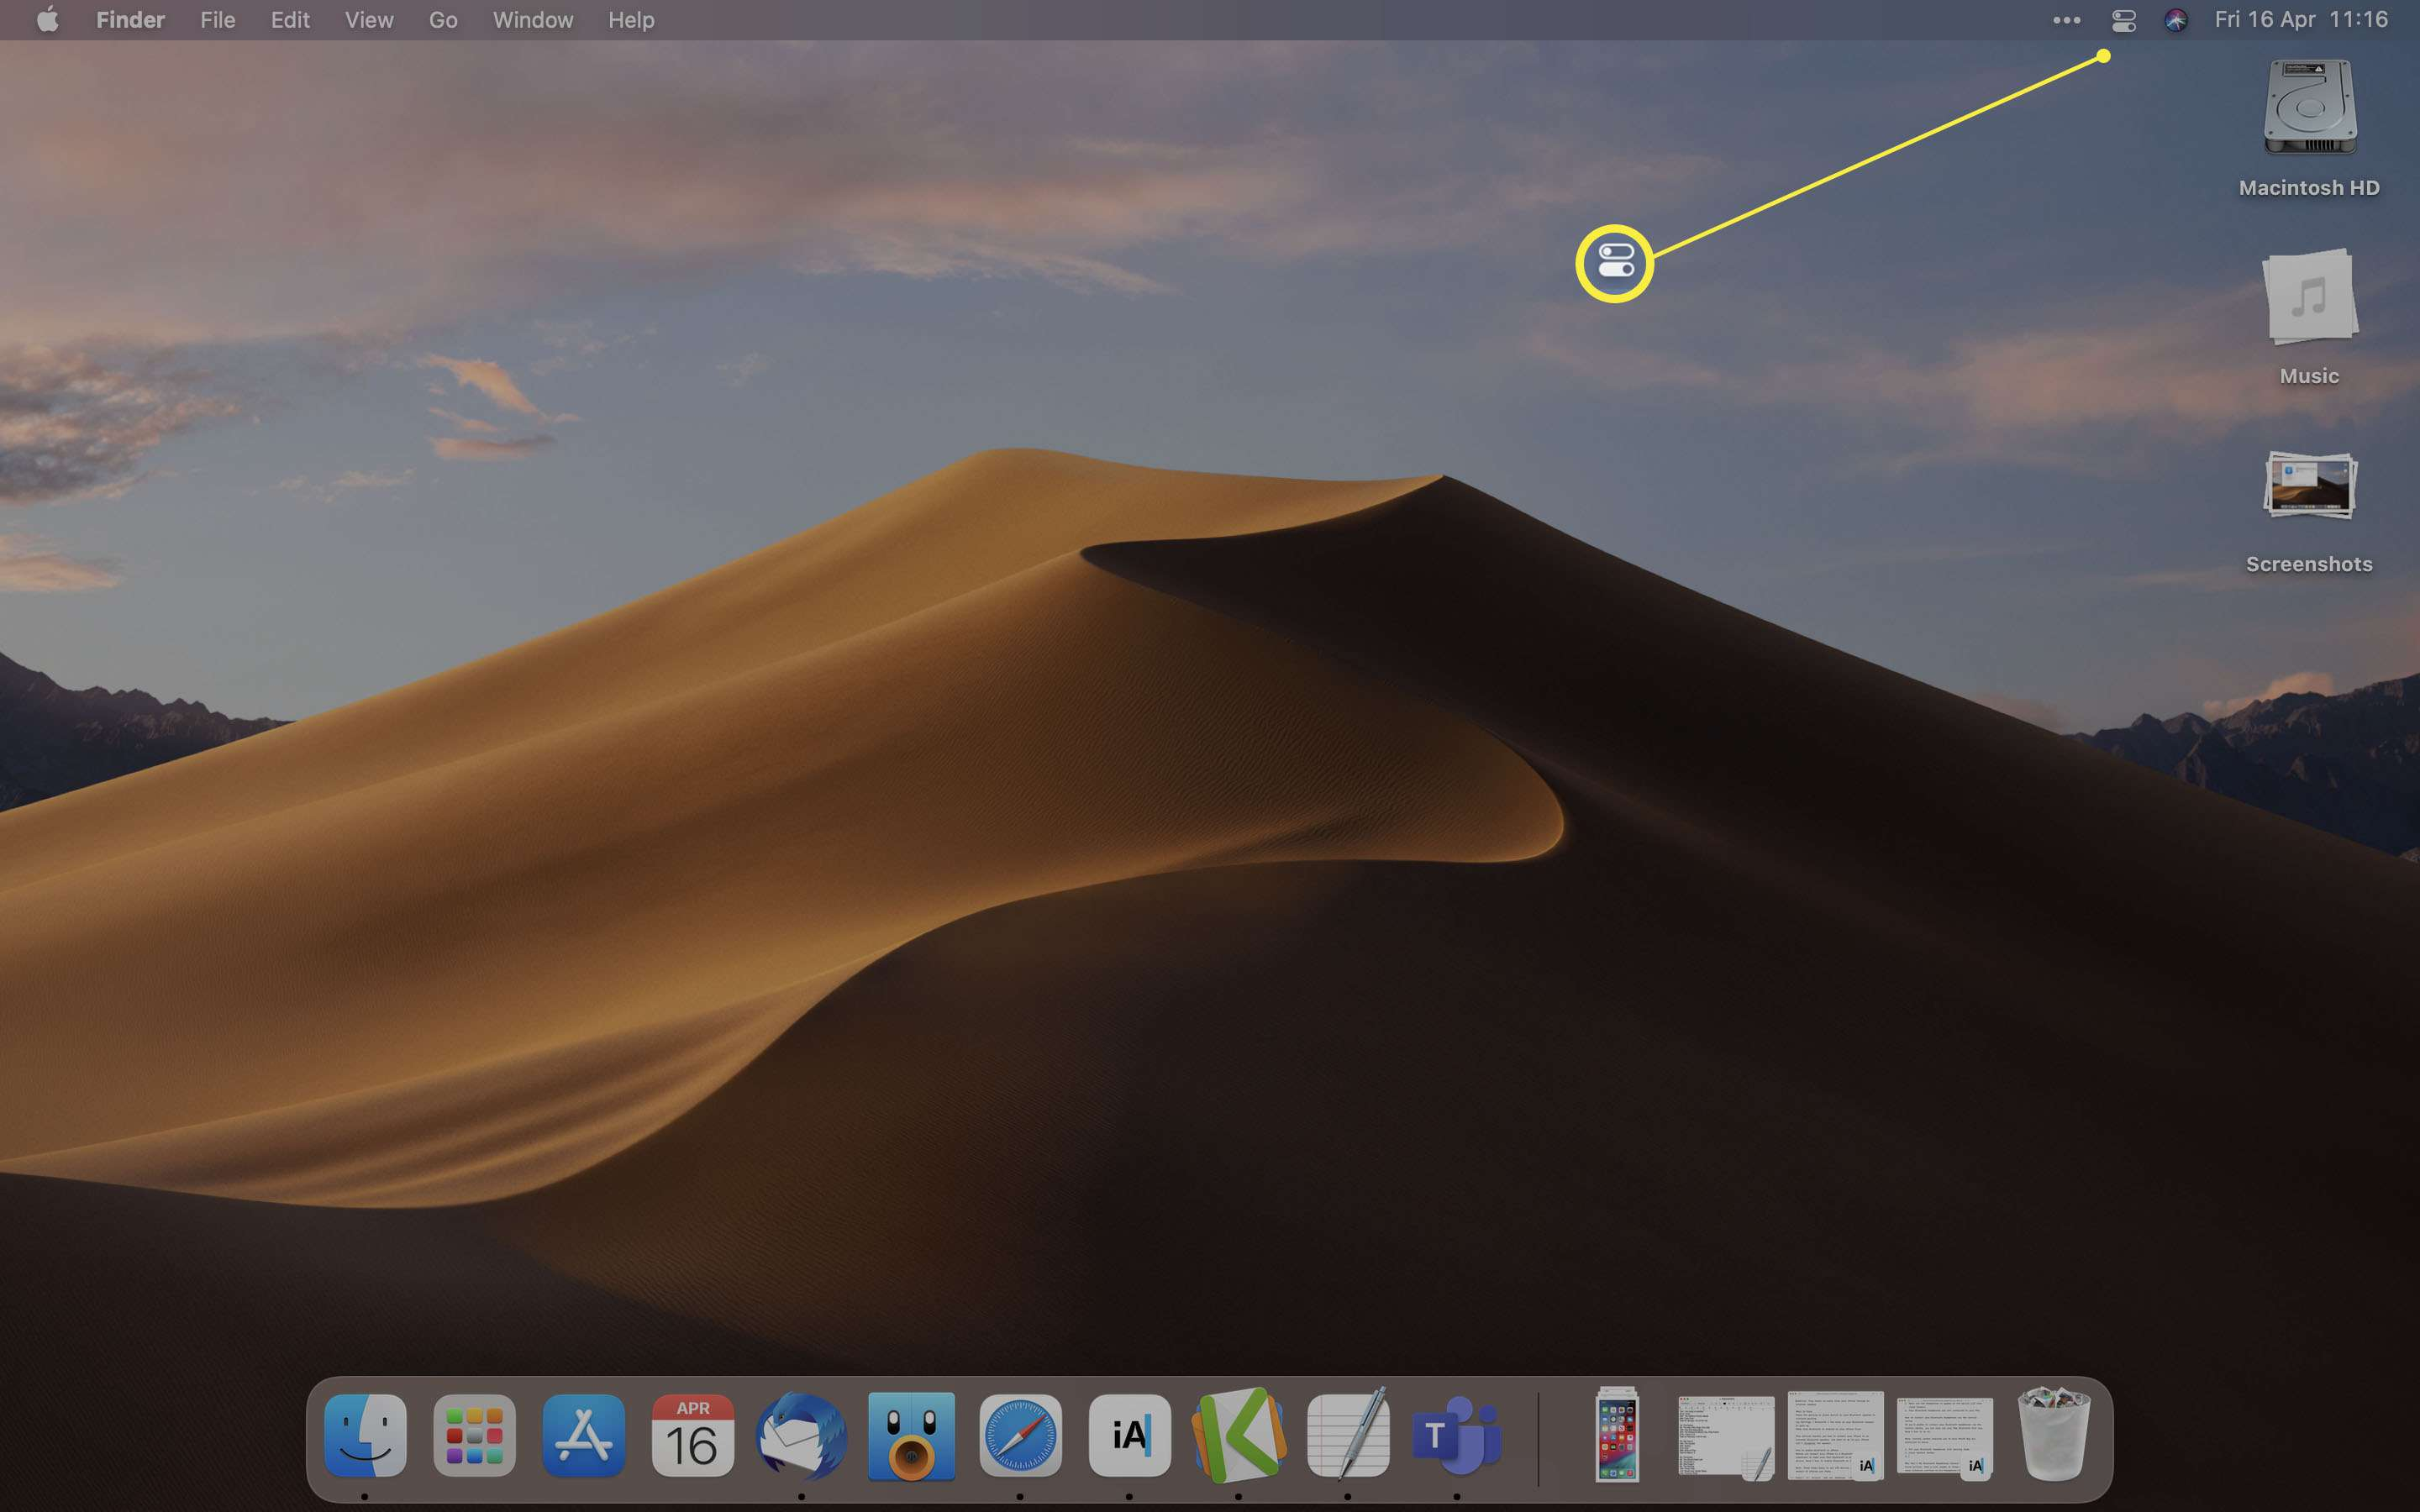 MacOS with Control Center icon highlighted